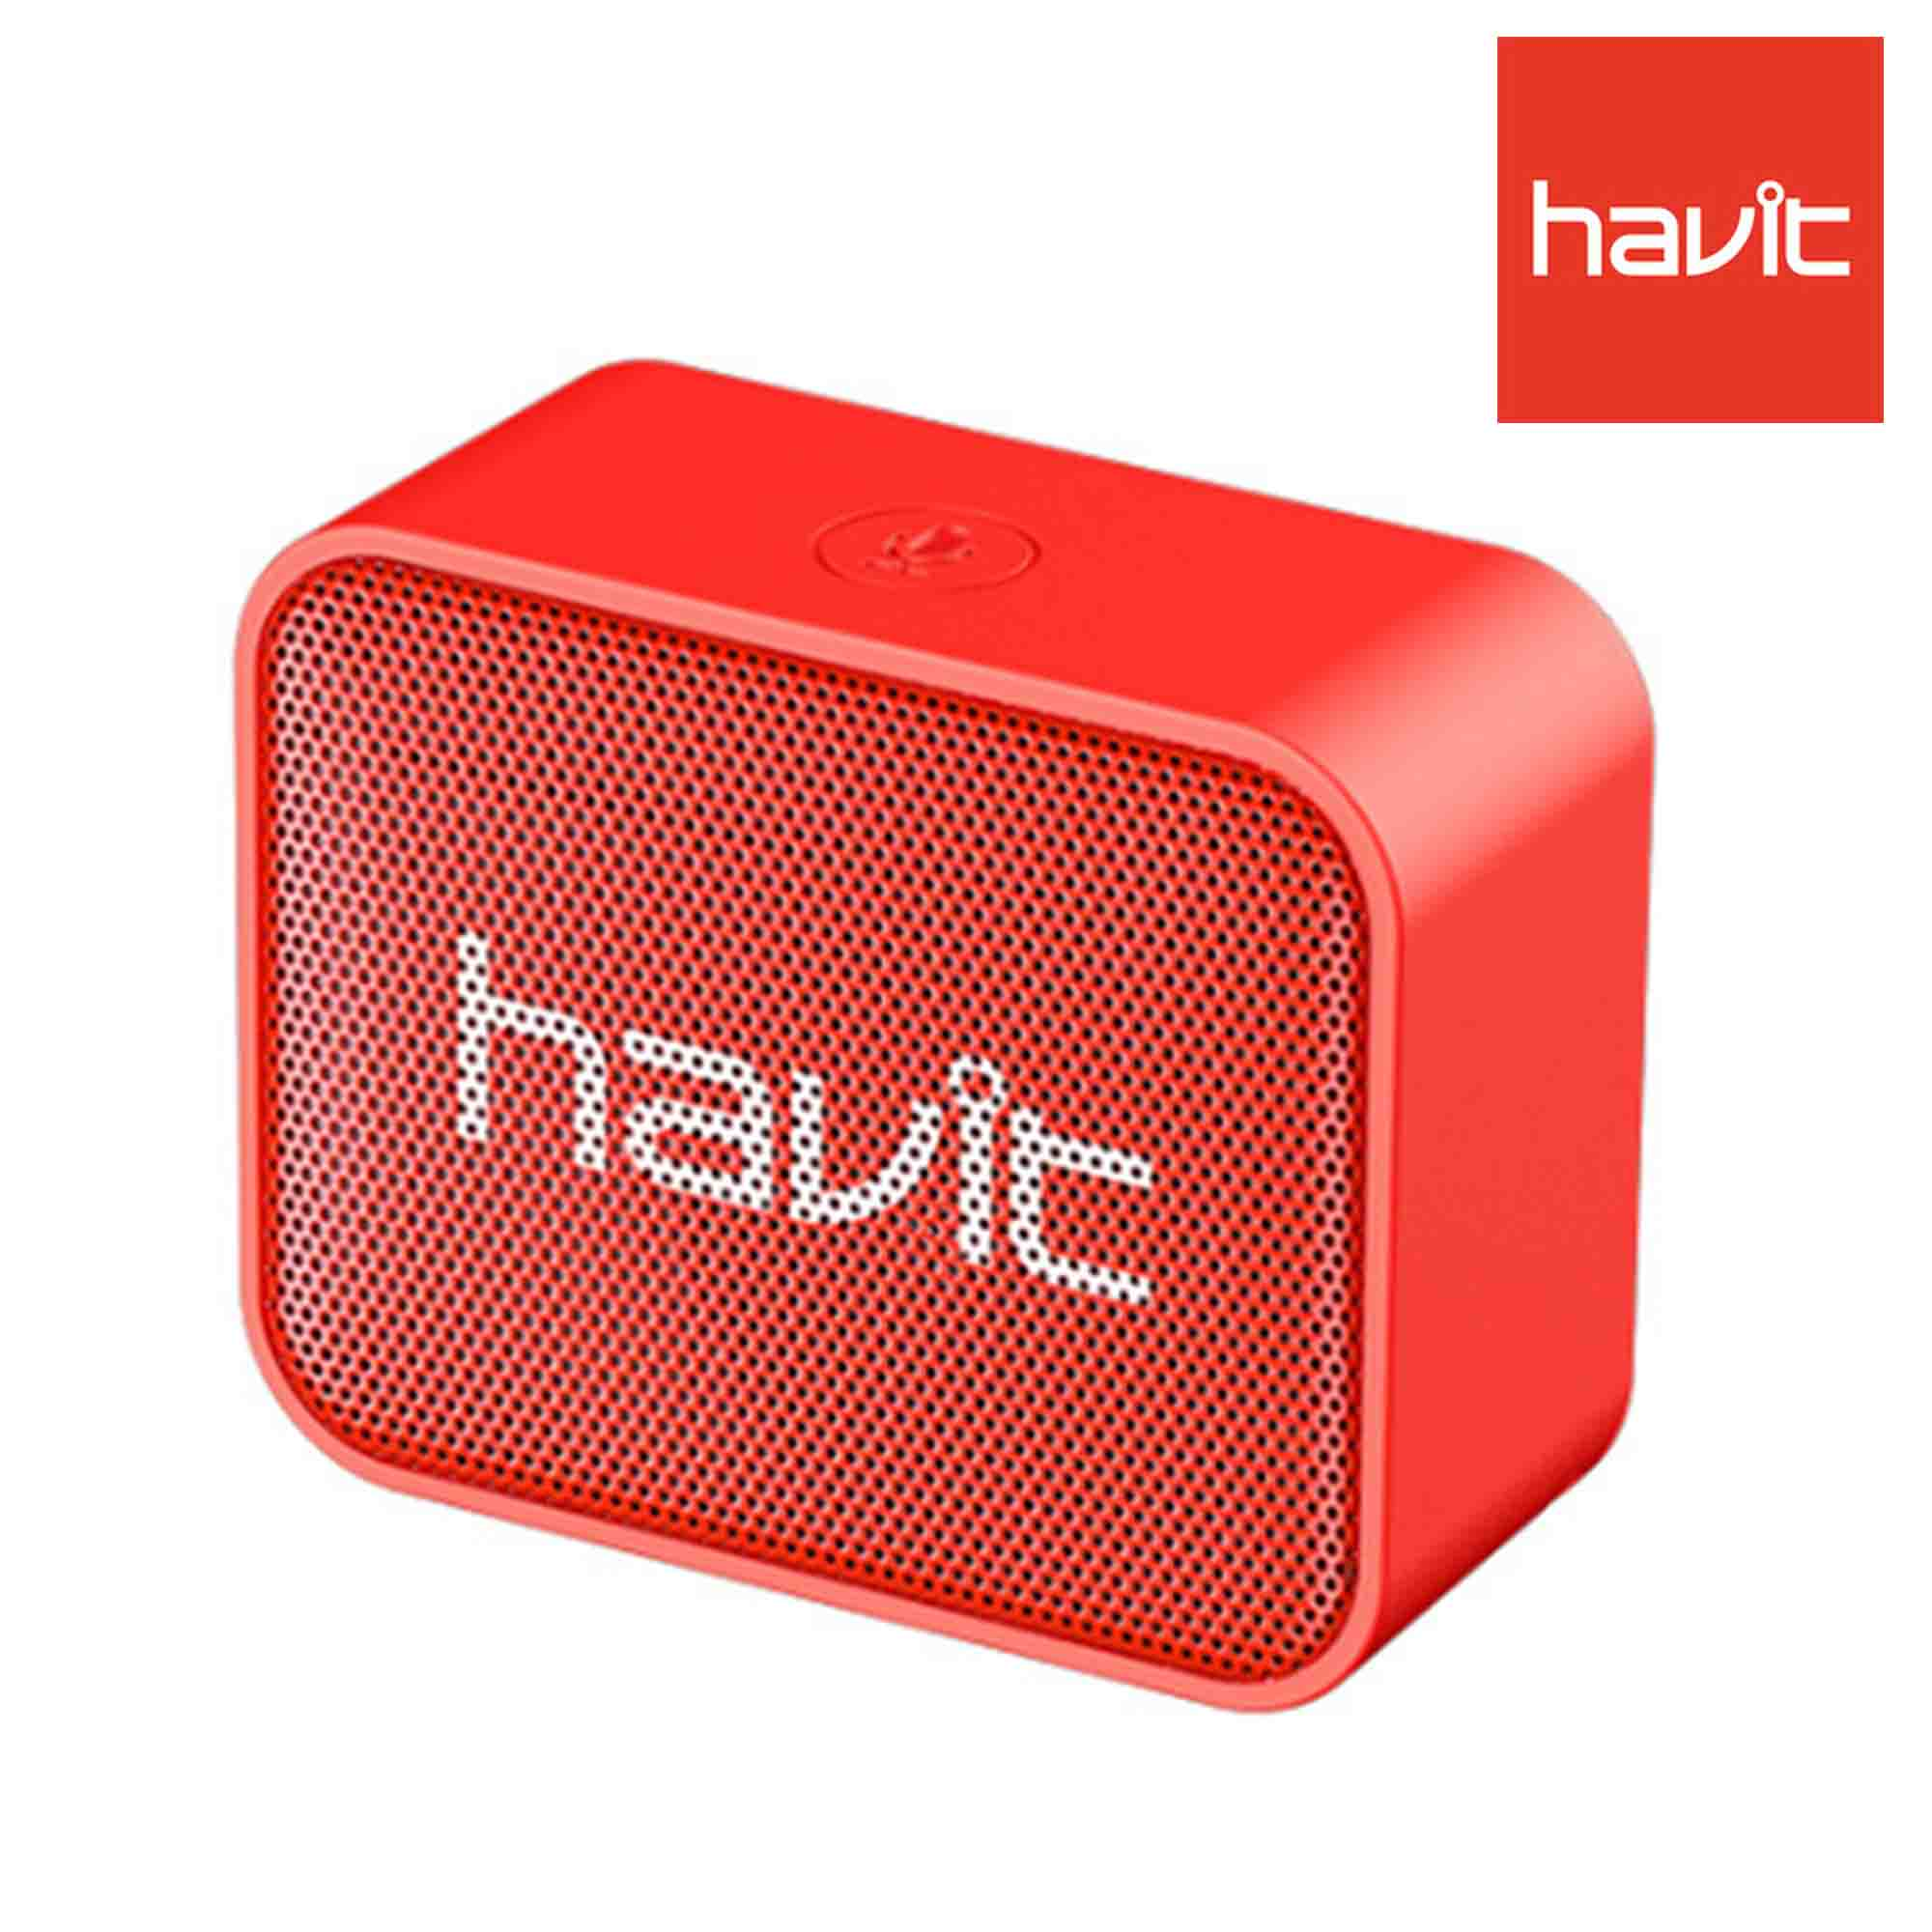 Havit MX702 Portable Bluetooth Speaker-Red